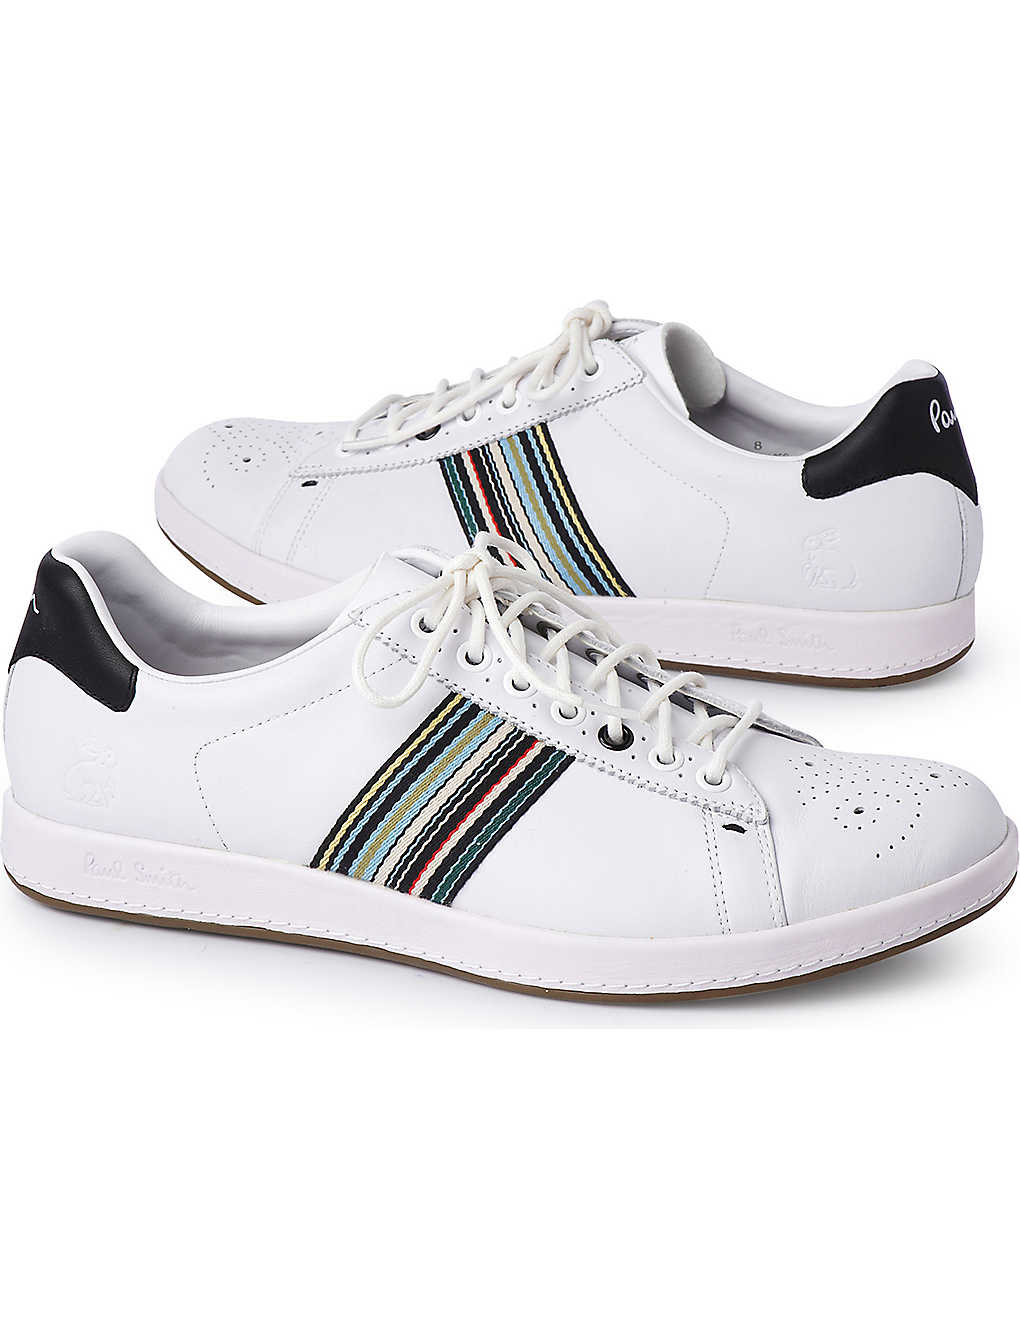 Paul Smith Rappi Sneakers aUvUDXt